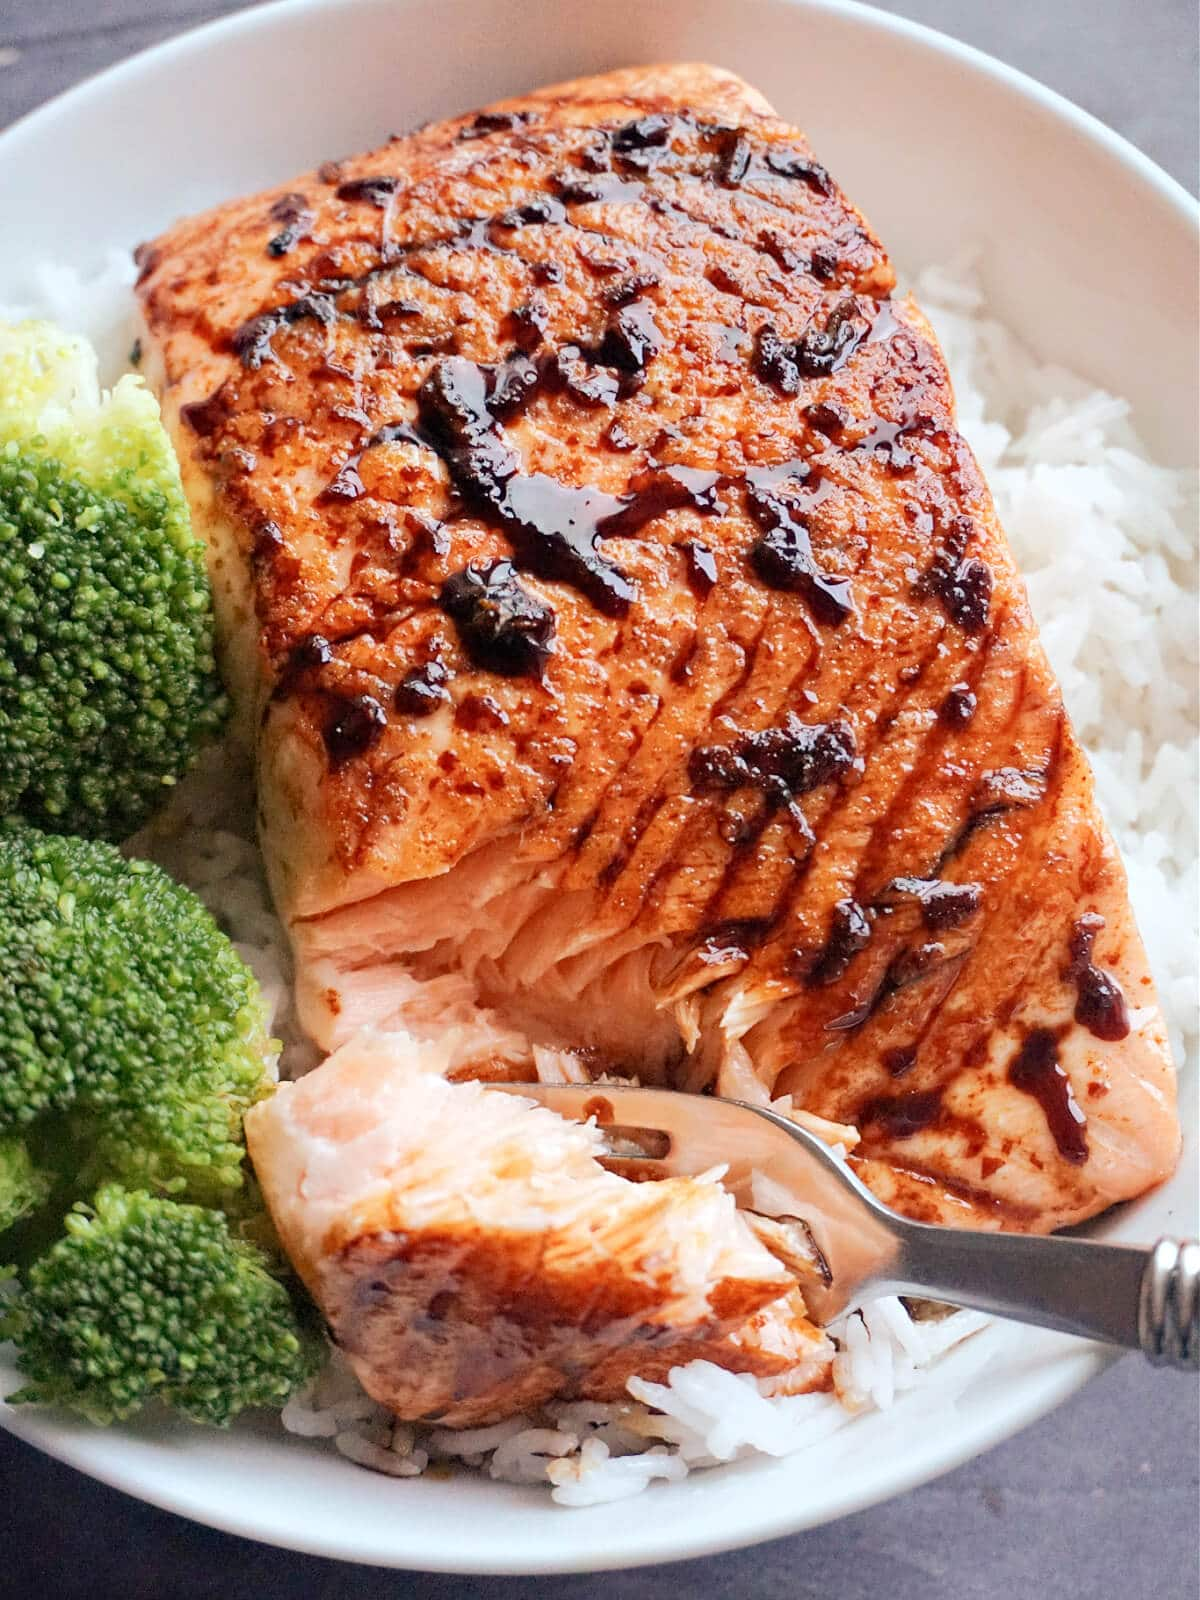 Close-up shot of a salmon filler over a bed of rice and 2 broccoli florets next to it